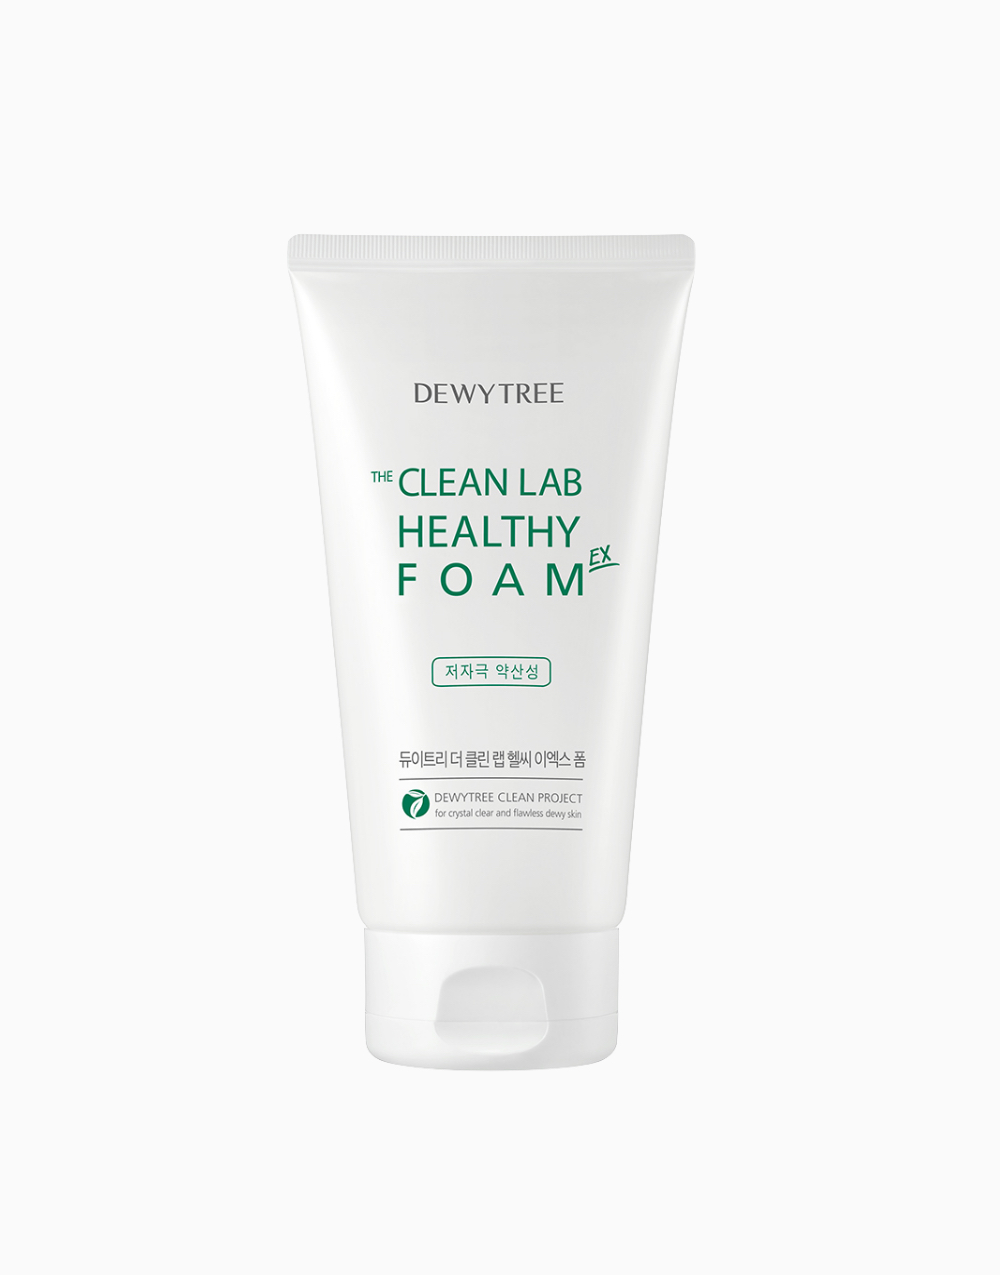 The Clean Lab Healthy Ex Foam by Dewytree